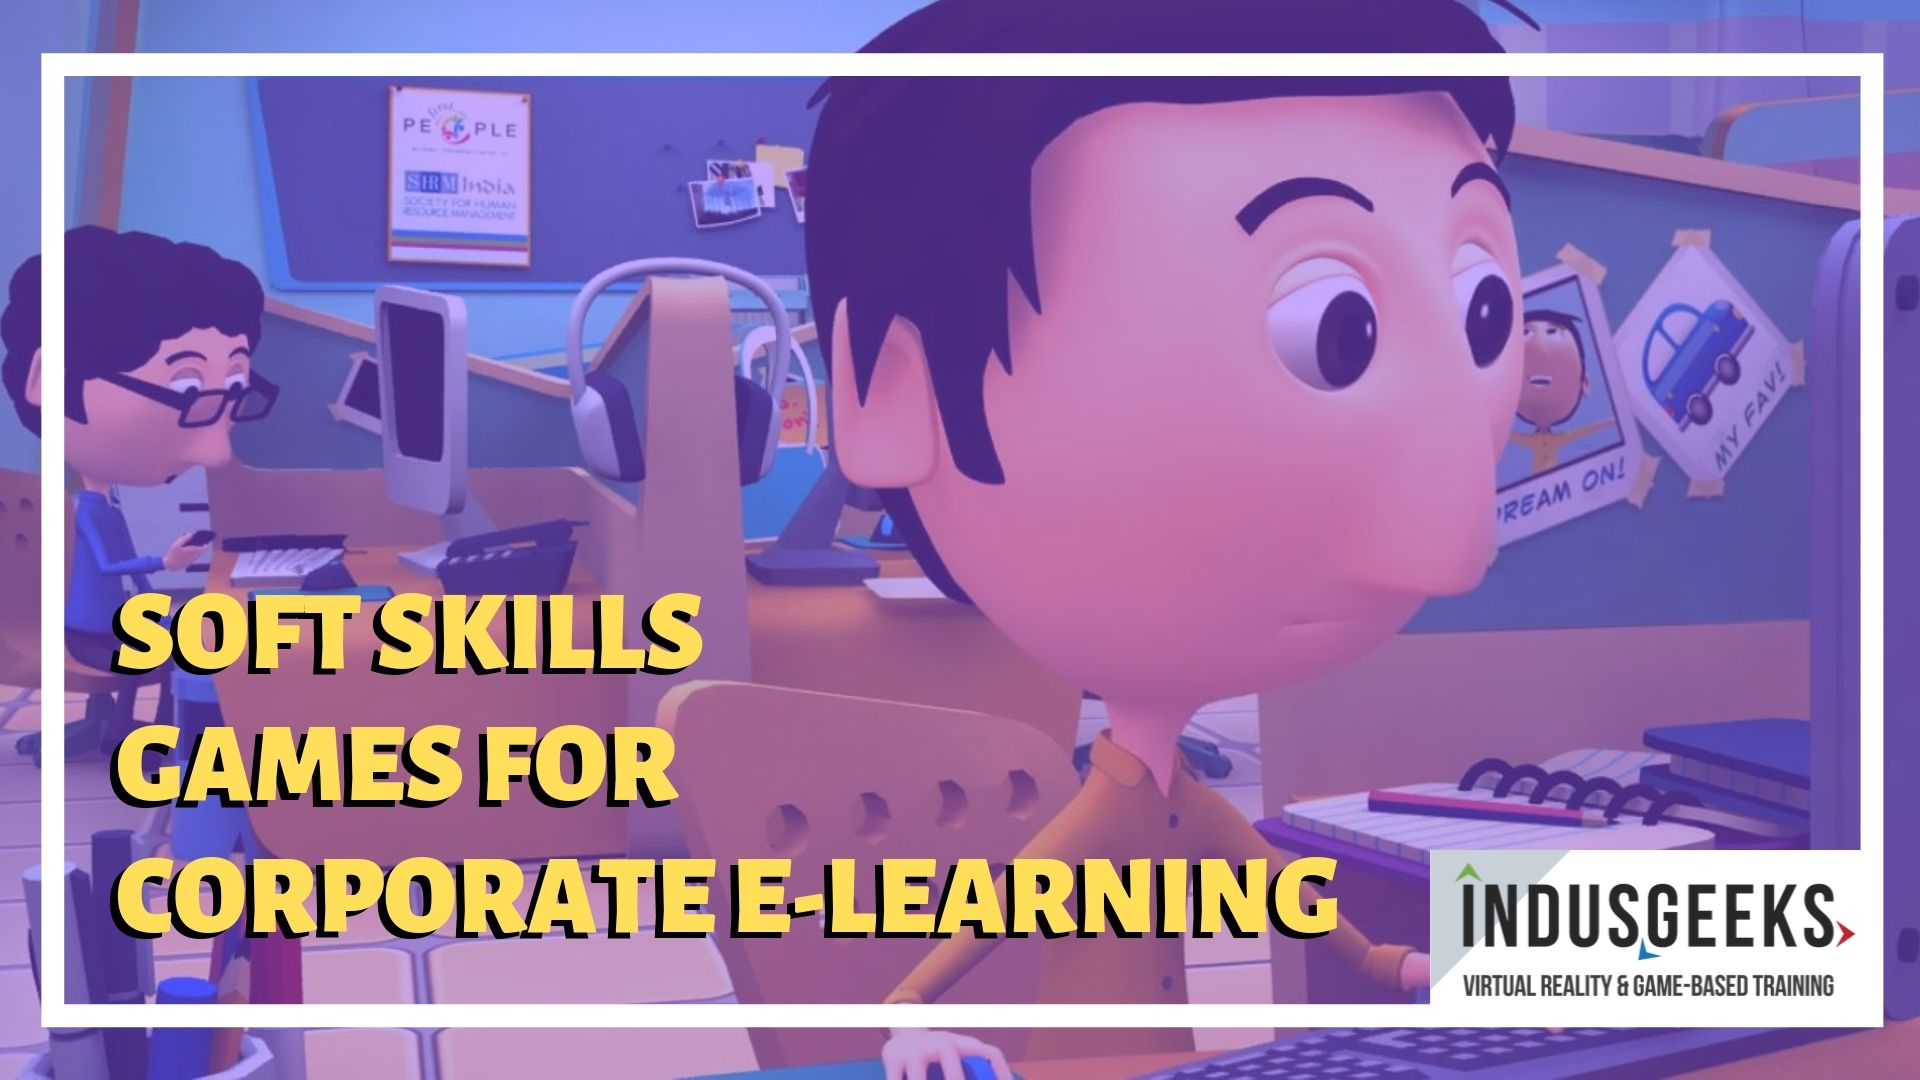 Soft skills games for corporate eLearning